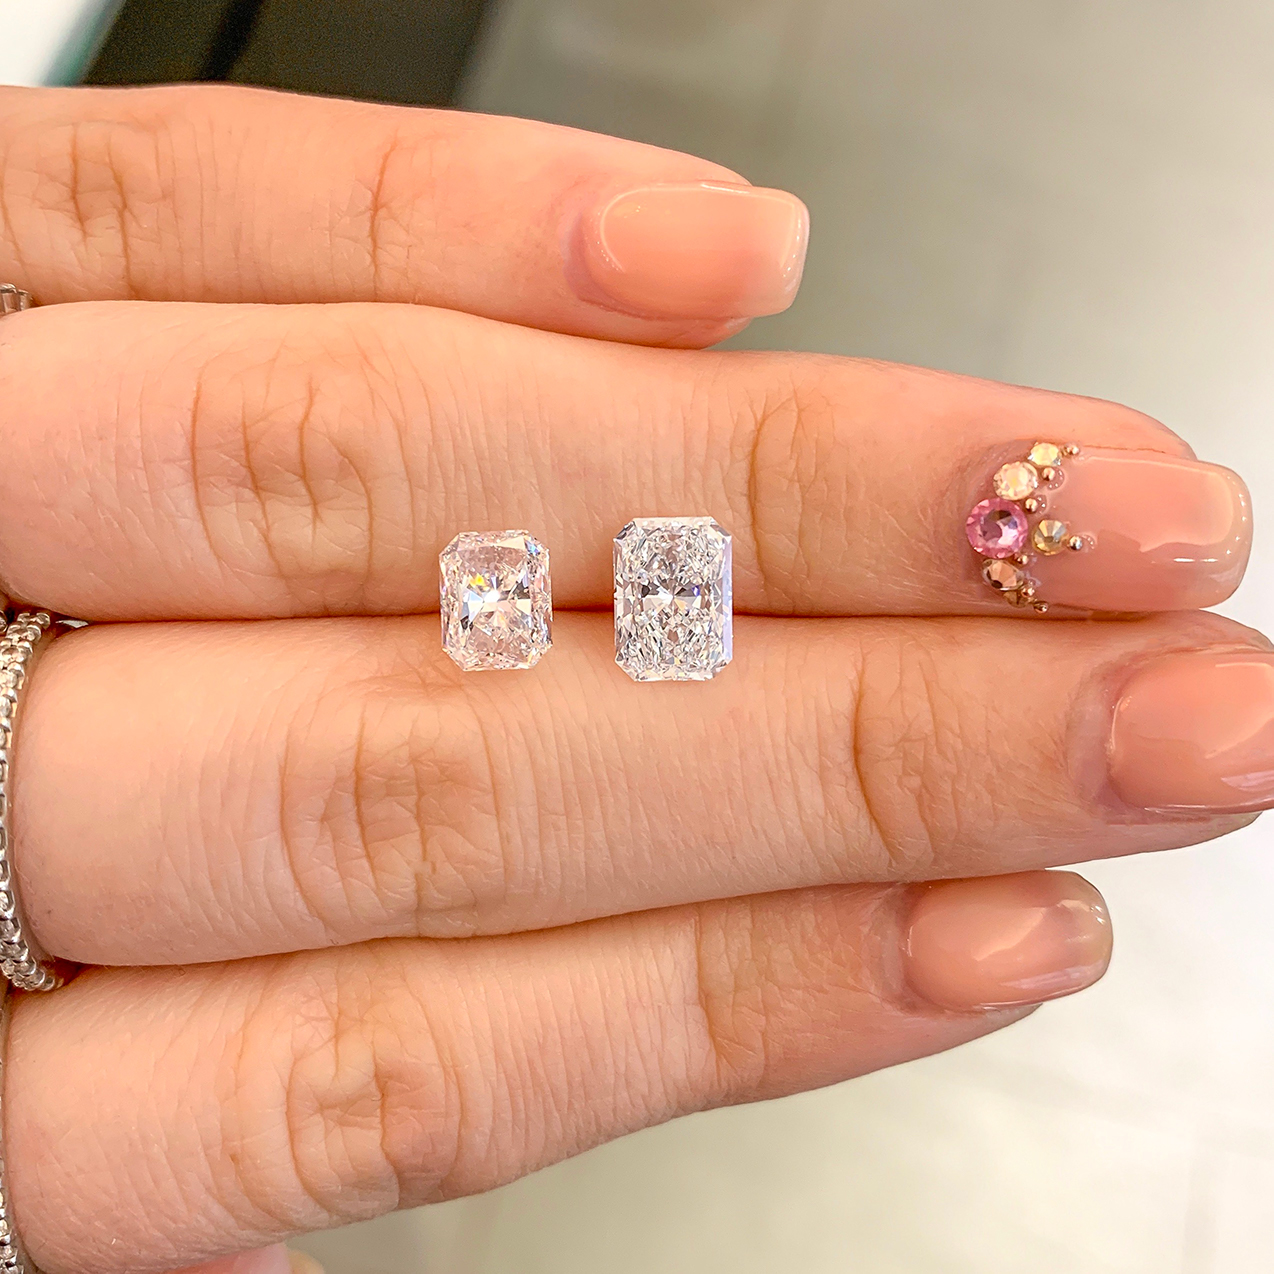 LB Diamond Difference, Theirs vs Ours: Radiant Cut Diamonds